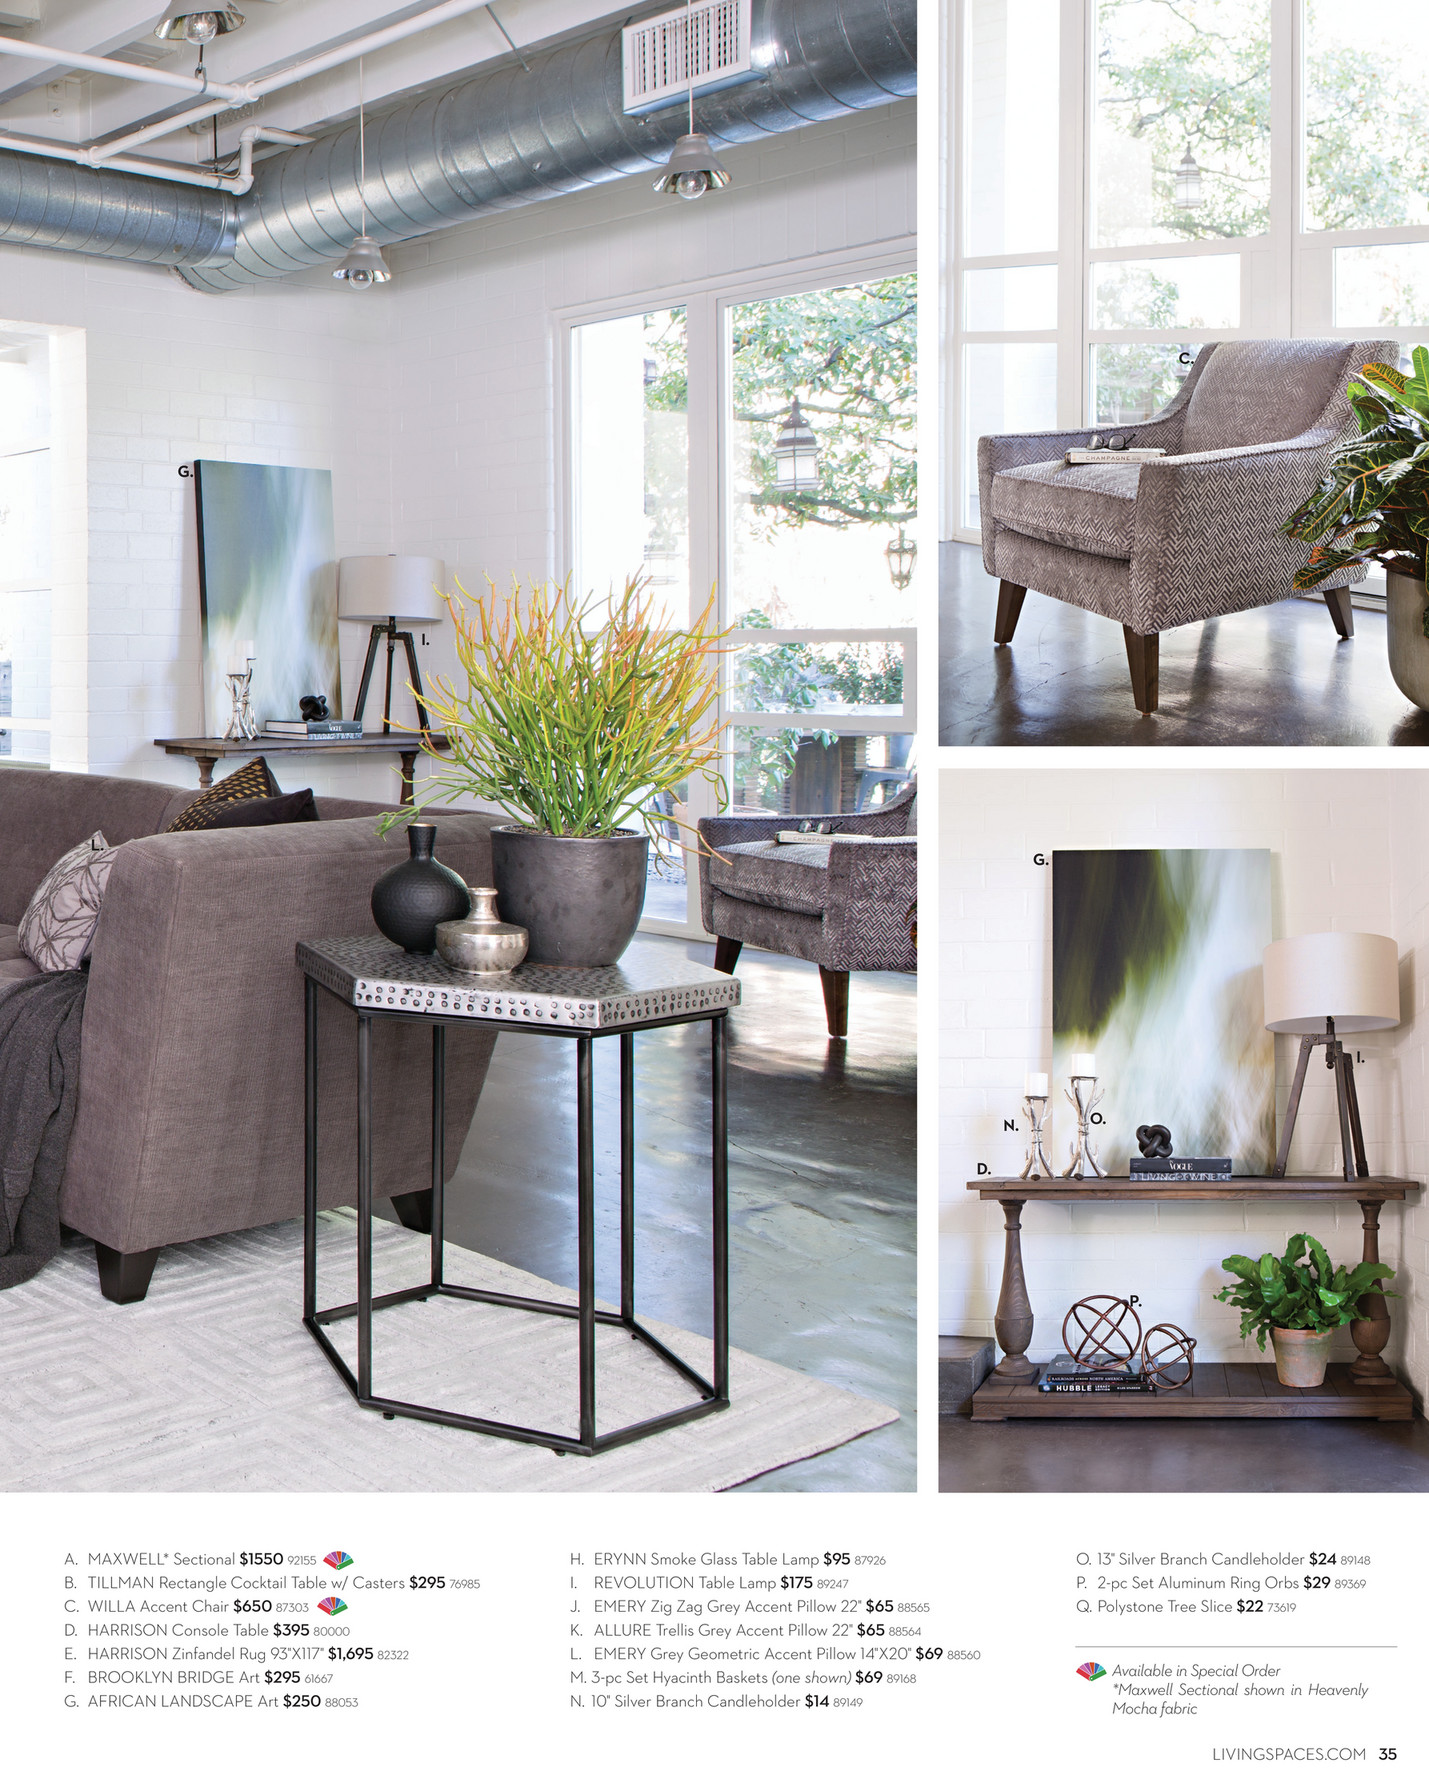 living spaces product catalog february 2016 page 34 35 available in special order maxwell sectional shown in heavenly mocha fabric livingspaces com 35